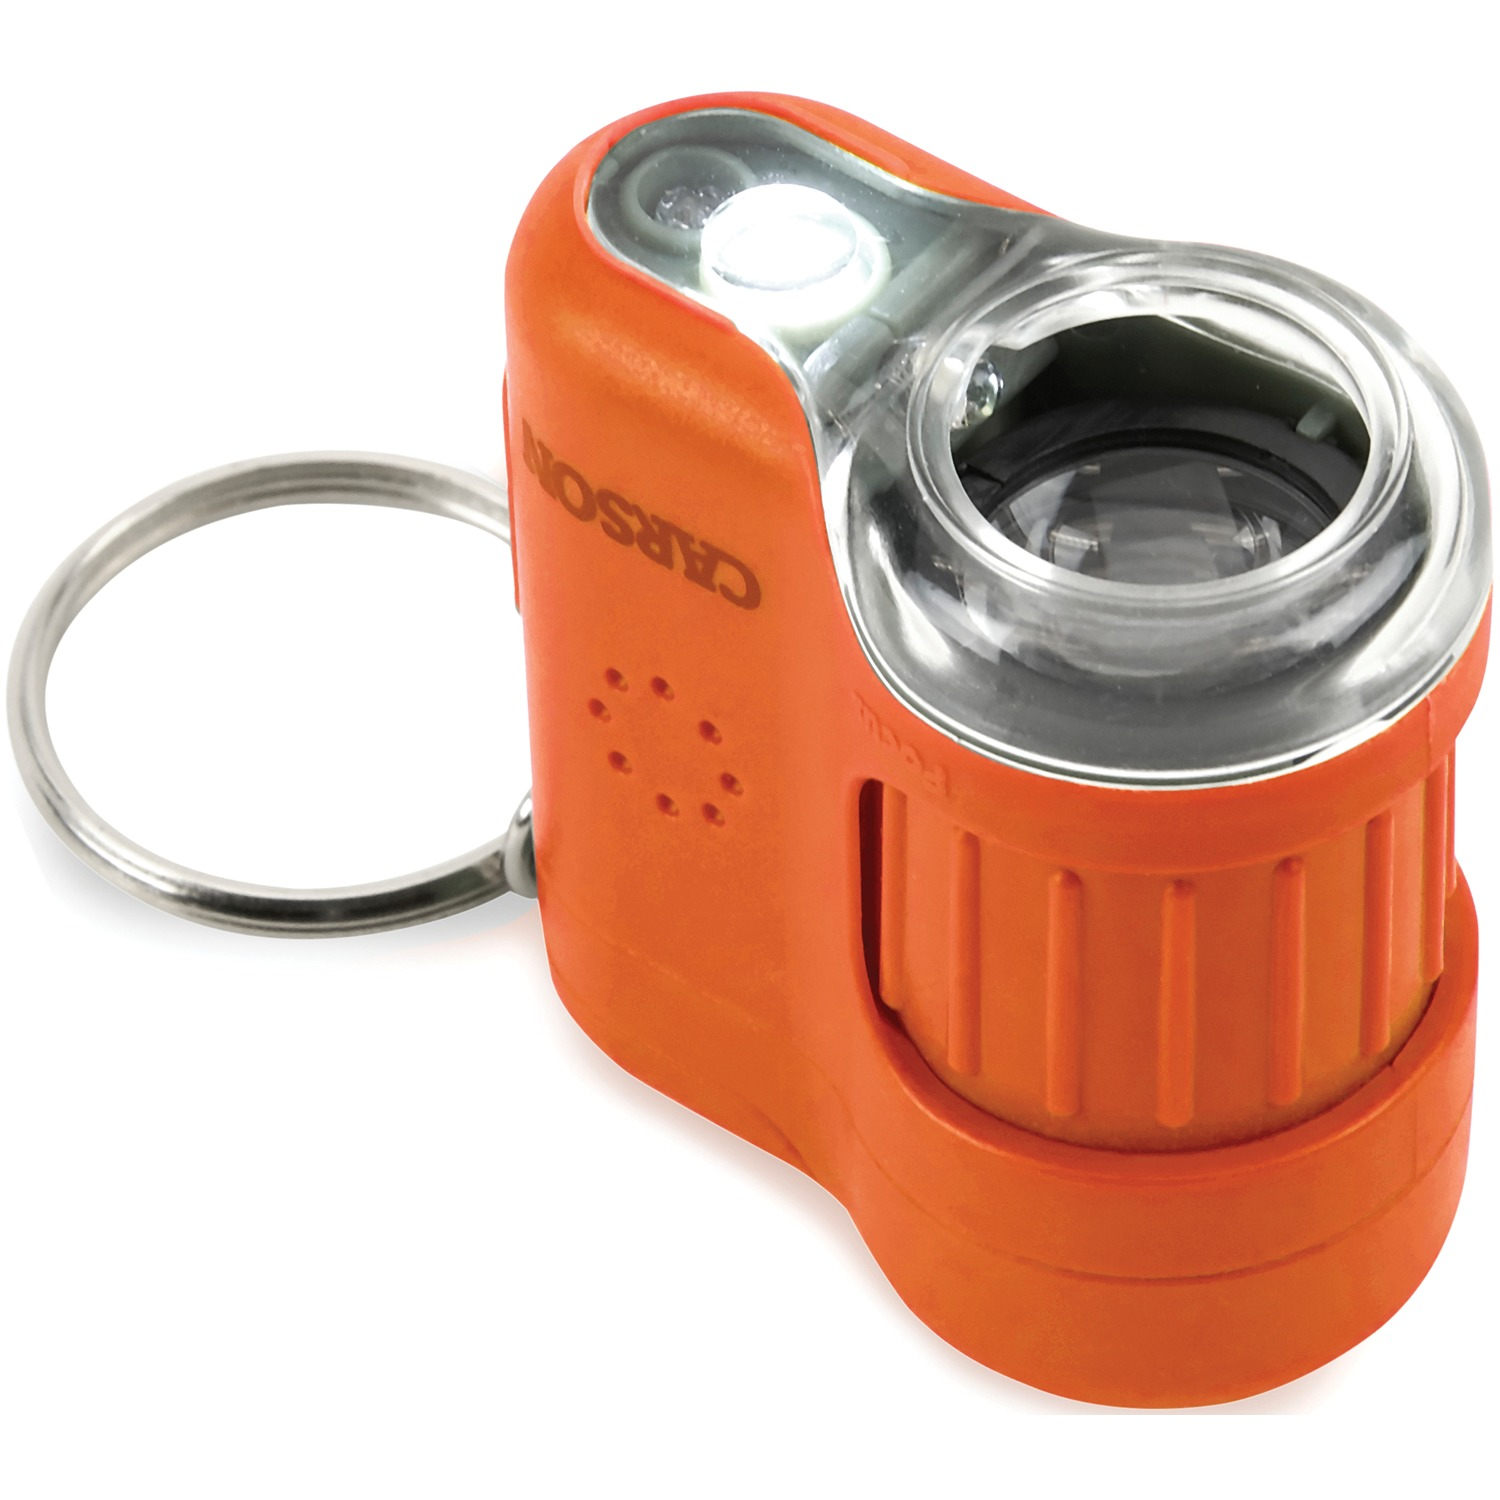 Carson Optical MM-280O Micromini 20x LED Lighted Pocket Microscope (Orange)